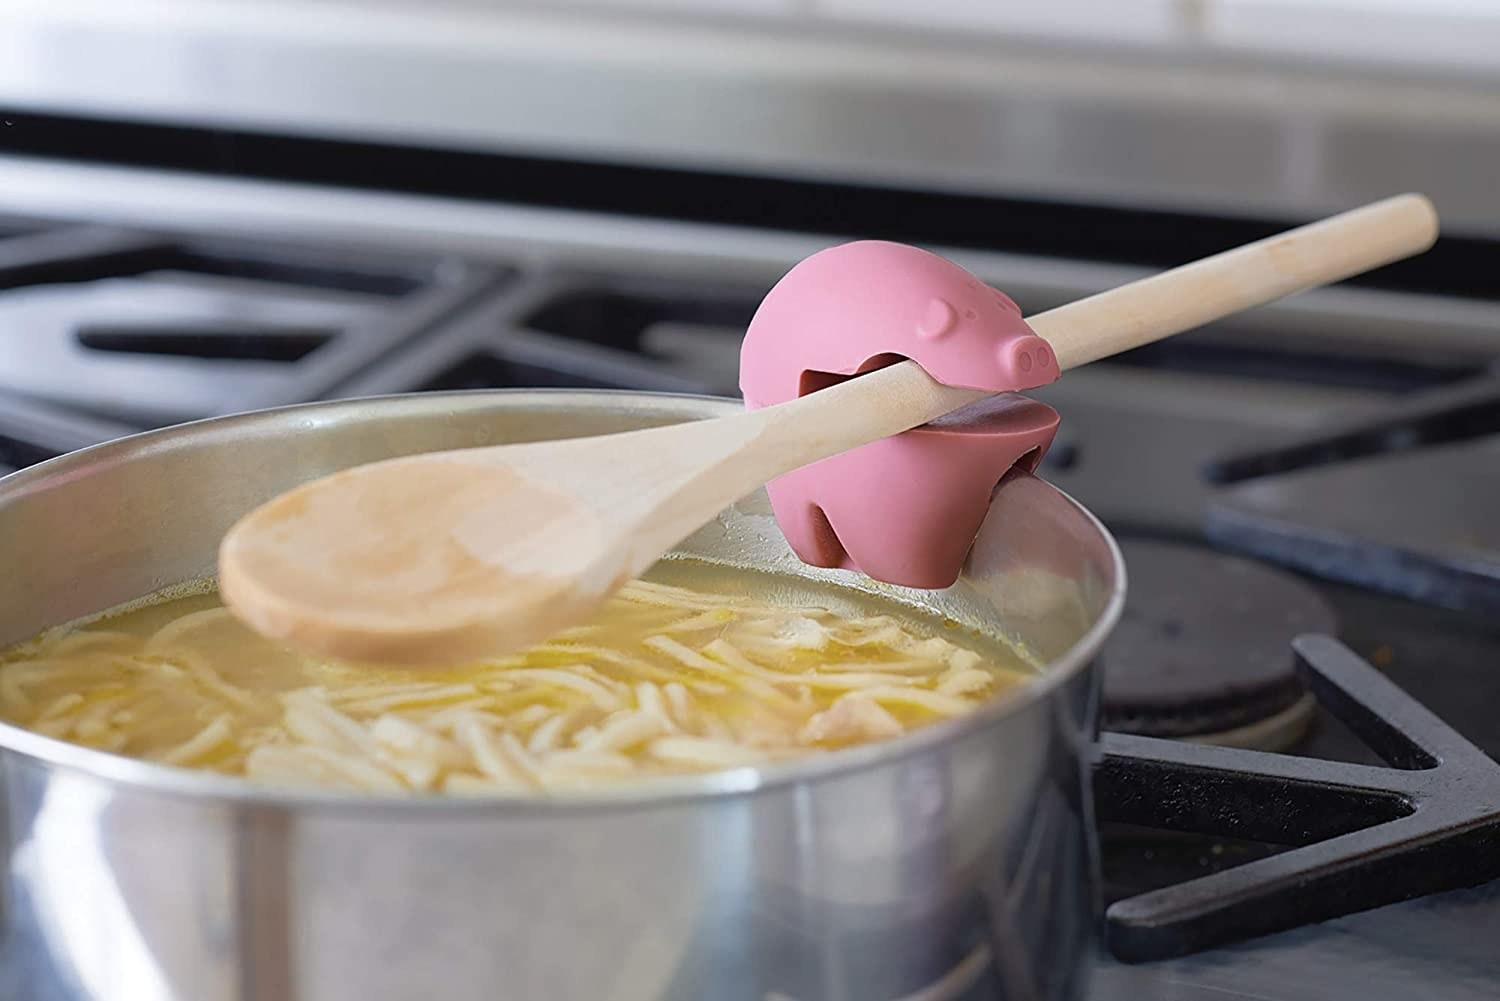 A pig-shaped silicone spoon rest clipped to the edge of a soup pot